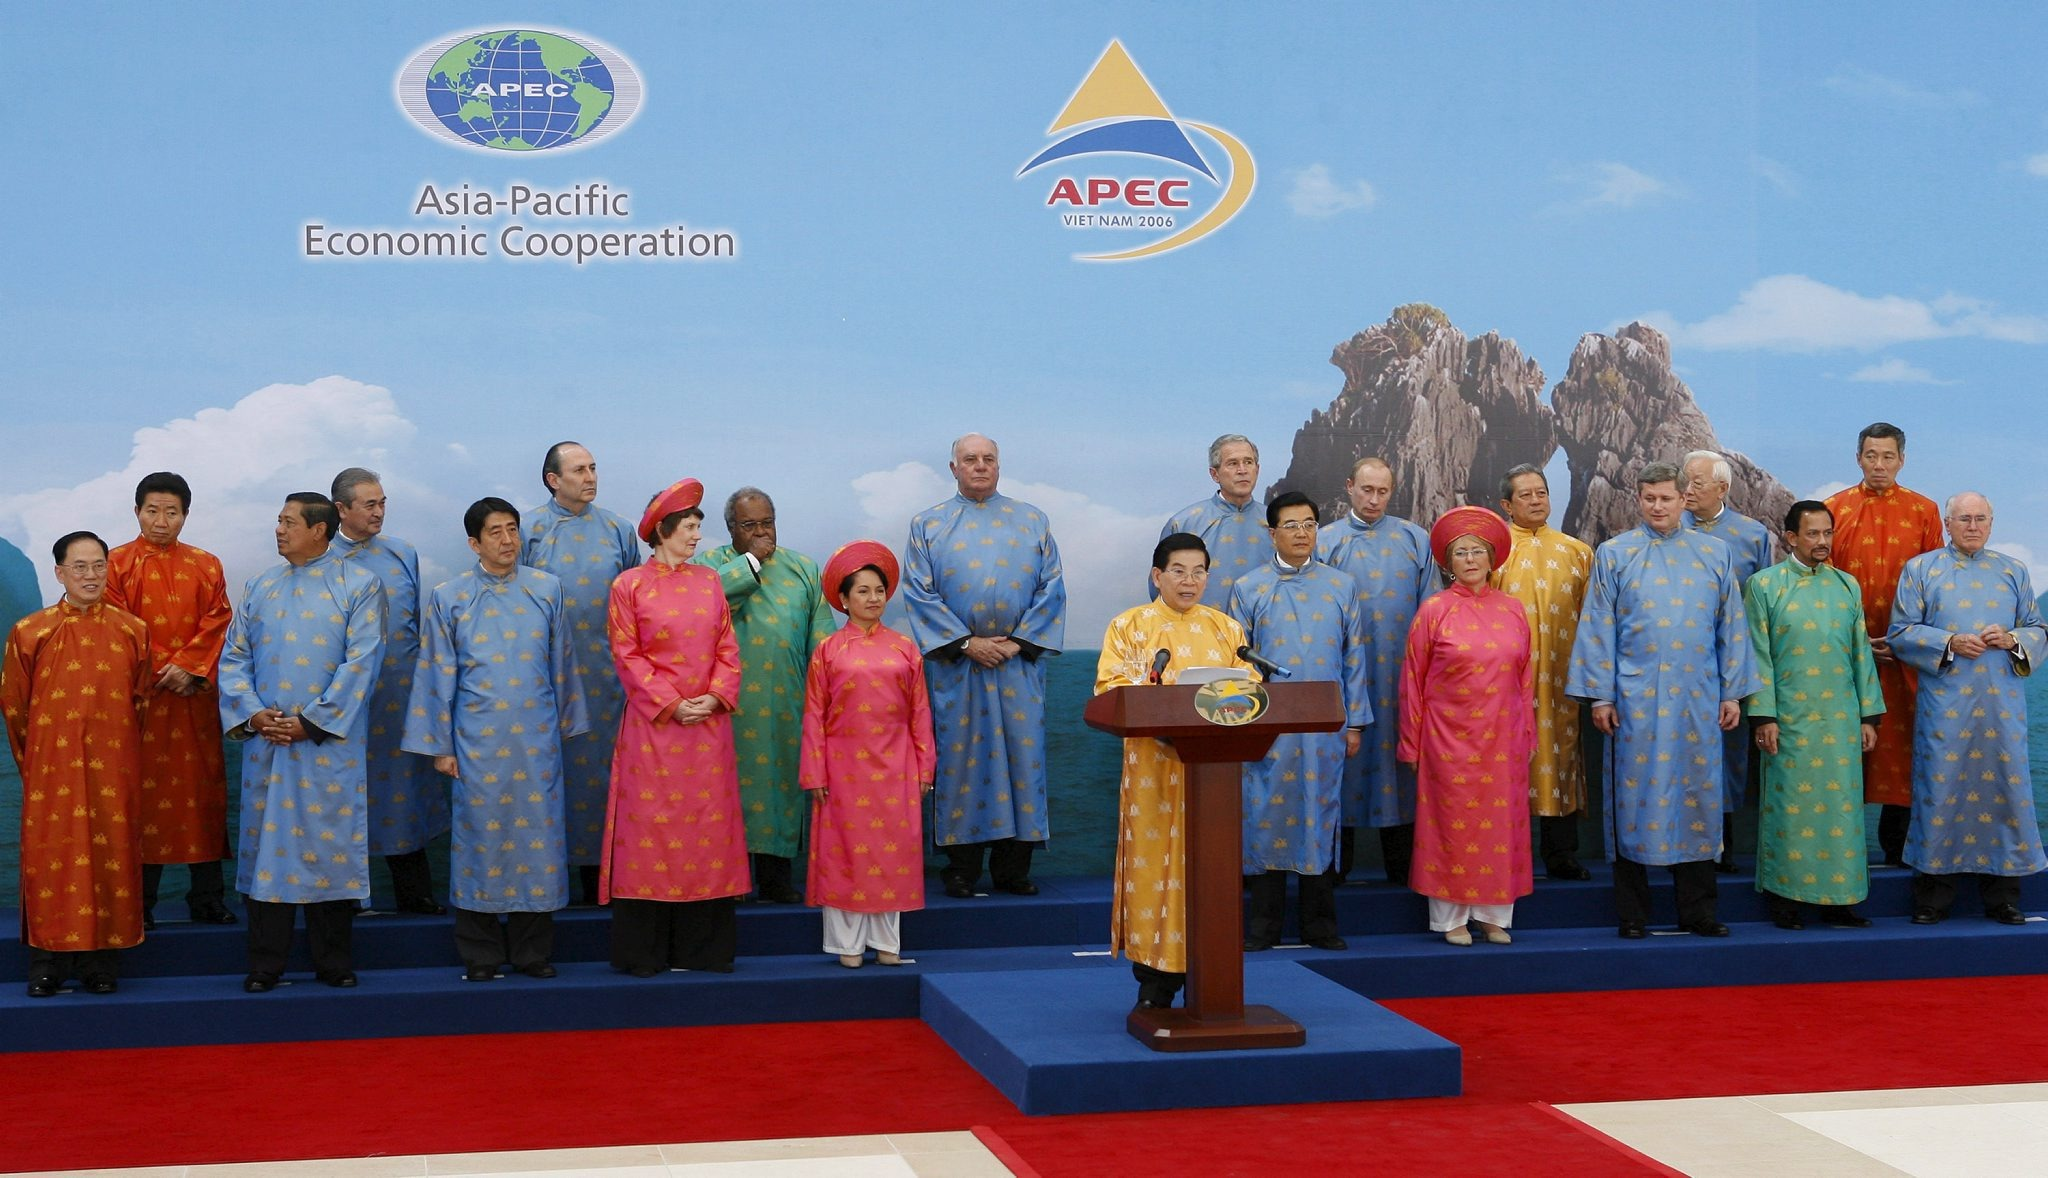 epa00866057 Vietnam president Nguyen Minh Triet reads the 21 Asia-Pacific Economic Cooperation (APEC) economic leaders declaration with all leaders dressed in traditional Ao Dai Vietnamese costume, in Hanoi, Vietnam Sunday 19 November, 2006 at the close of the annual economic summit. Front row, L-R: Hong Kong Chief Executive Donald Tsang, Indonesia's President Susilo Bambang Yudhoyono, Japan's Prime Minister Shinzo Abe, New Zealand's Prime Minister Helen Clark, Philippine President Gloria Macapagal Arroyo, Triet, China's President Hu Jintao, Chile's President Michelle Bachelet, Canada's Prime Minister Stephen Harper, Brunei's Sultan Hassanal Bolkiah, Australia's Prime Minister John Howard. Back row, L-R: South Korea's President Roh Moo-hyun, Malaysia's Prime Minister Abdullah Ahmad Badawi, Mexico's Economy Minister Sergio Alejandro García de Alba Zepeda, Papua New Guinea's Prime Minister Michael Thomas Somare, Peru's First Vice President Luis Giampietri, U.S. President George W. Bush, Russia's President Vladimir Putin, Thailand's Prime Minister Surayud Chulanont, Taiwan's representative Morris Chang, Singapore's Prime Minister Lee Hsien Loong. EPA/HOANG DINH NAM / POOL